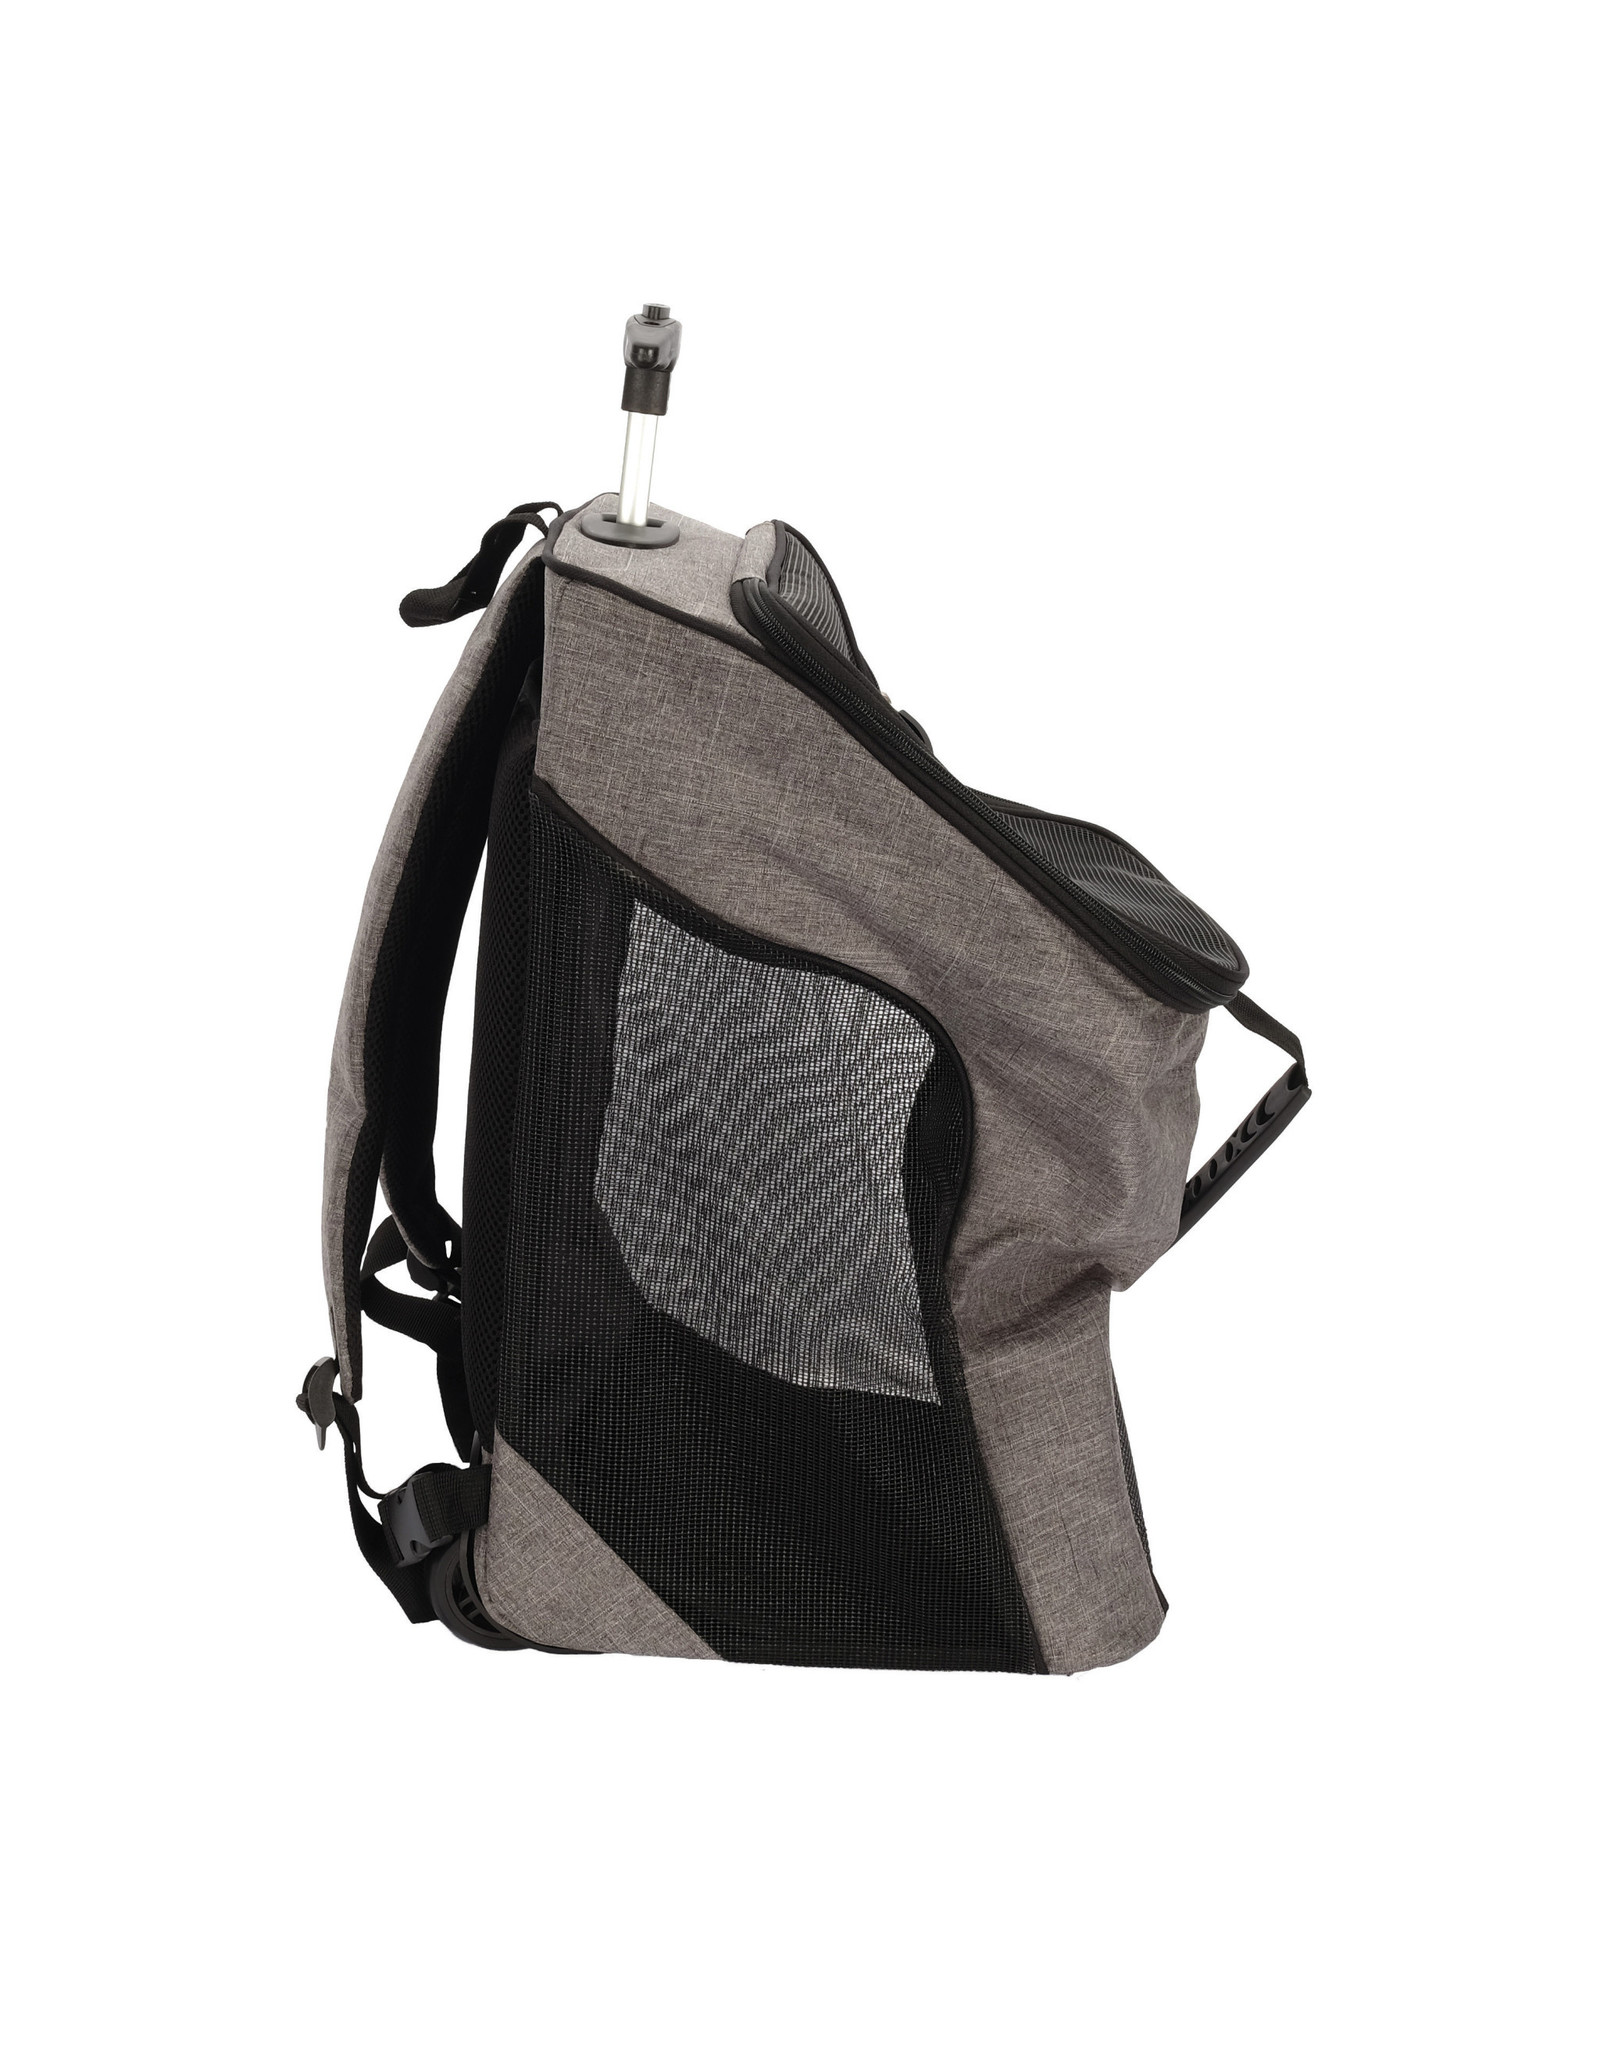 DogIt Soft Carrier 2-in-1 Wheeled Carrier/Backpack Gray